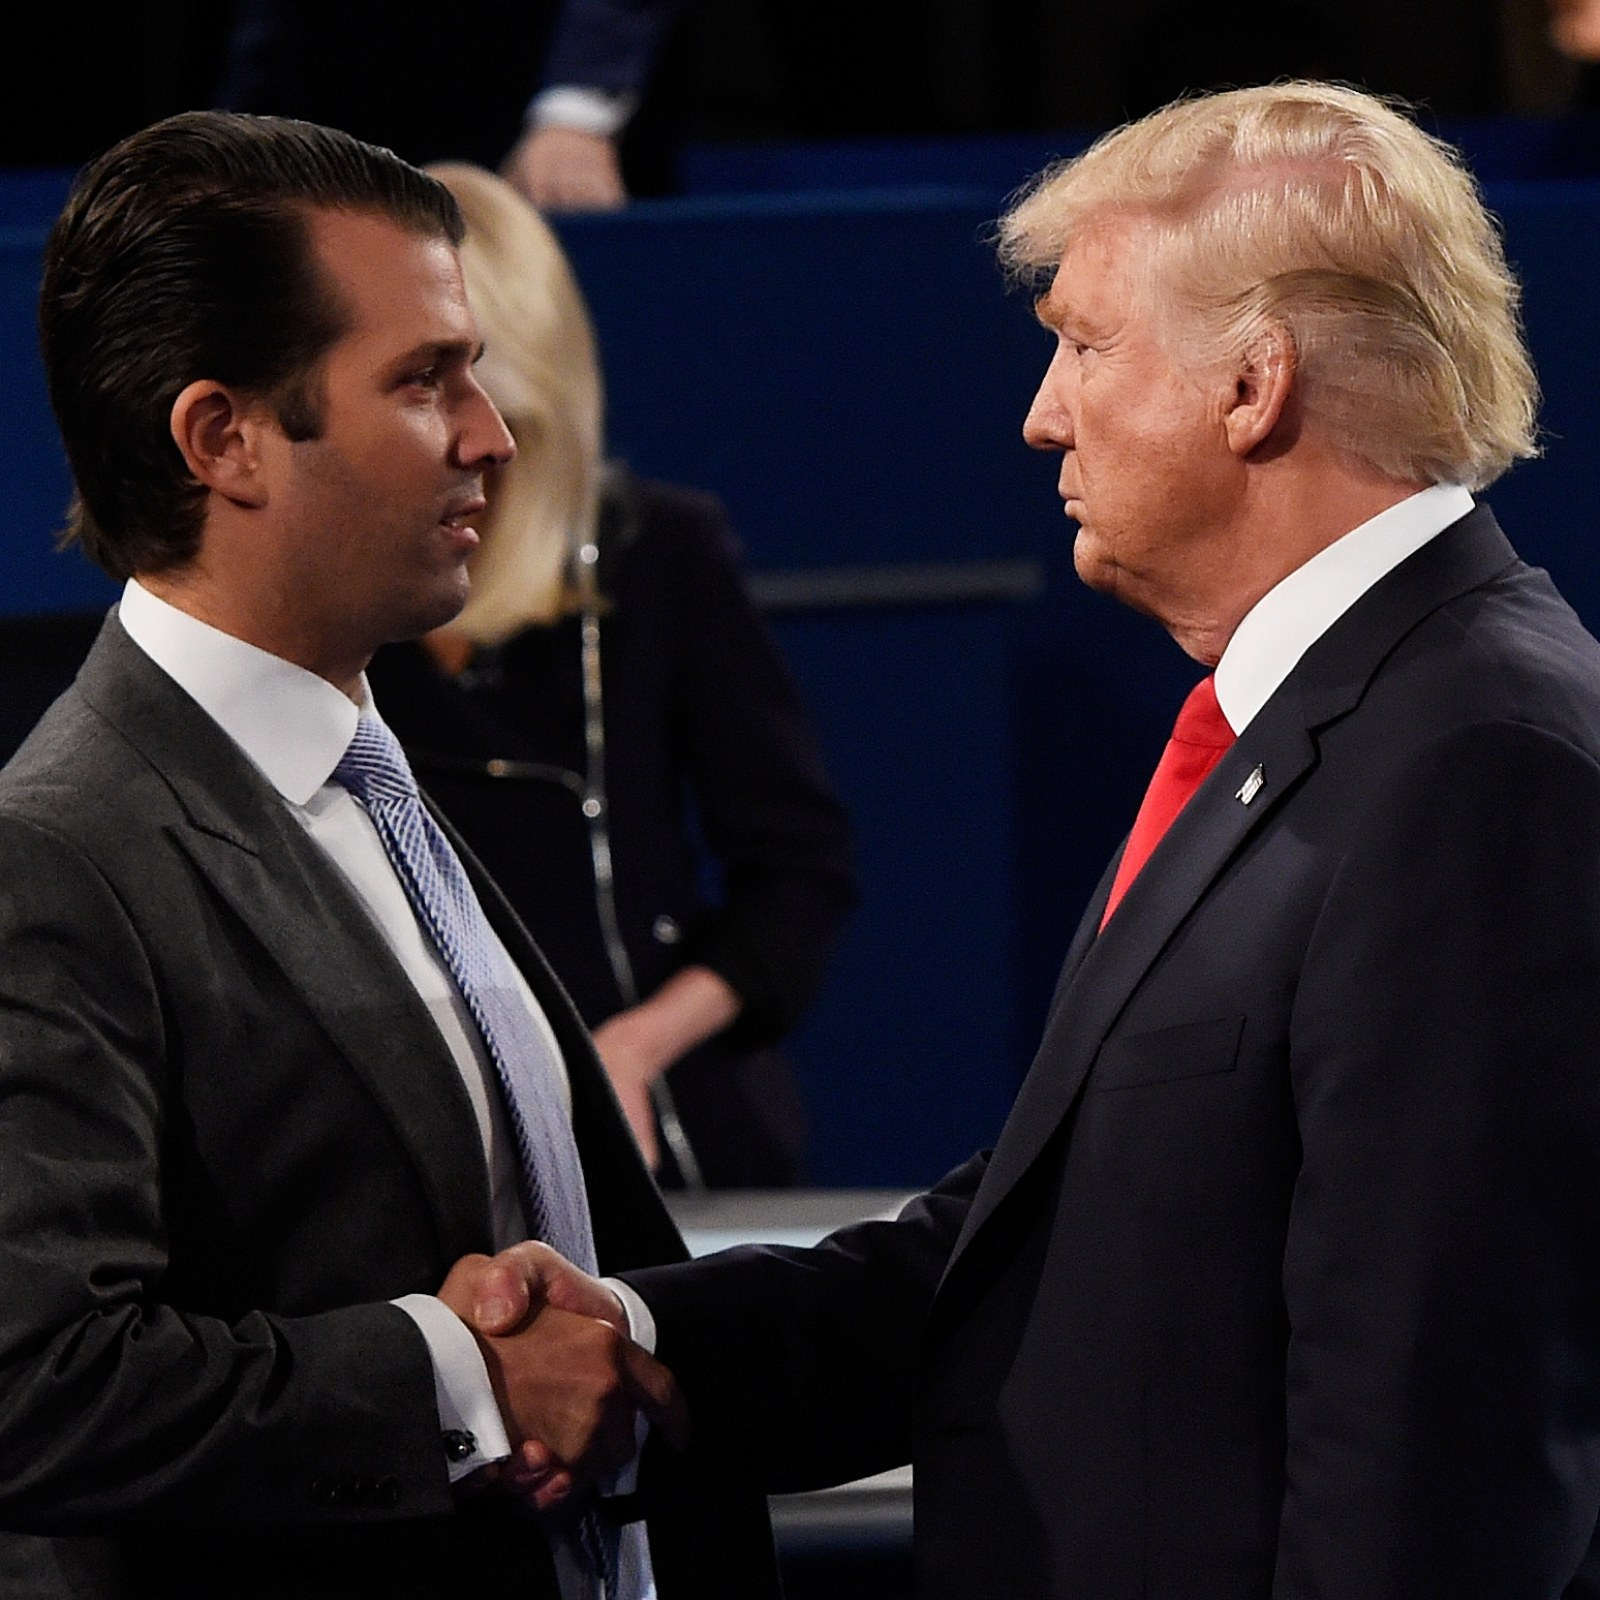 Donald Trump Jr. Will Run For President in 2024 and He'll Likely ...